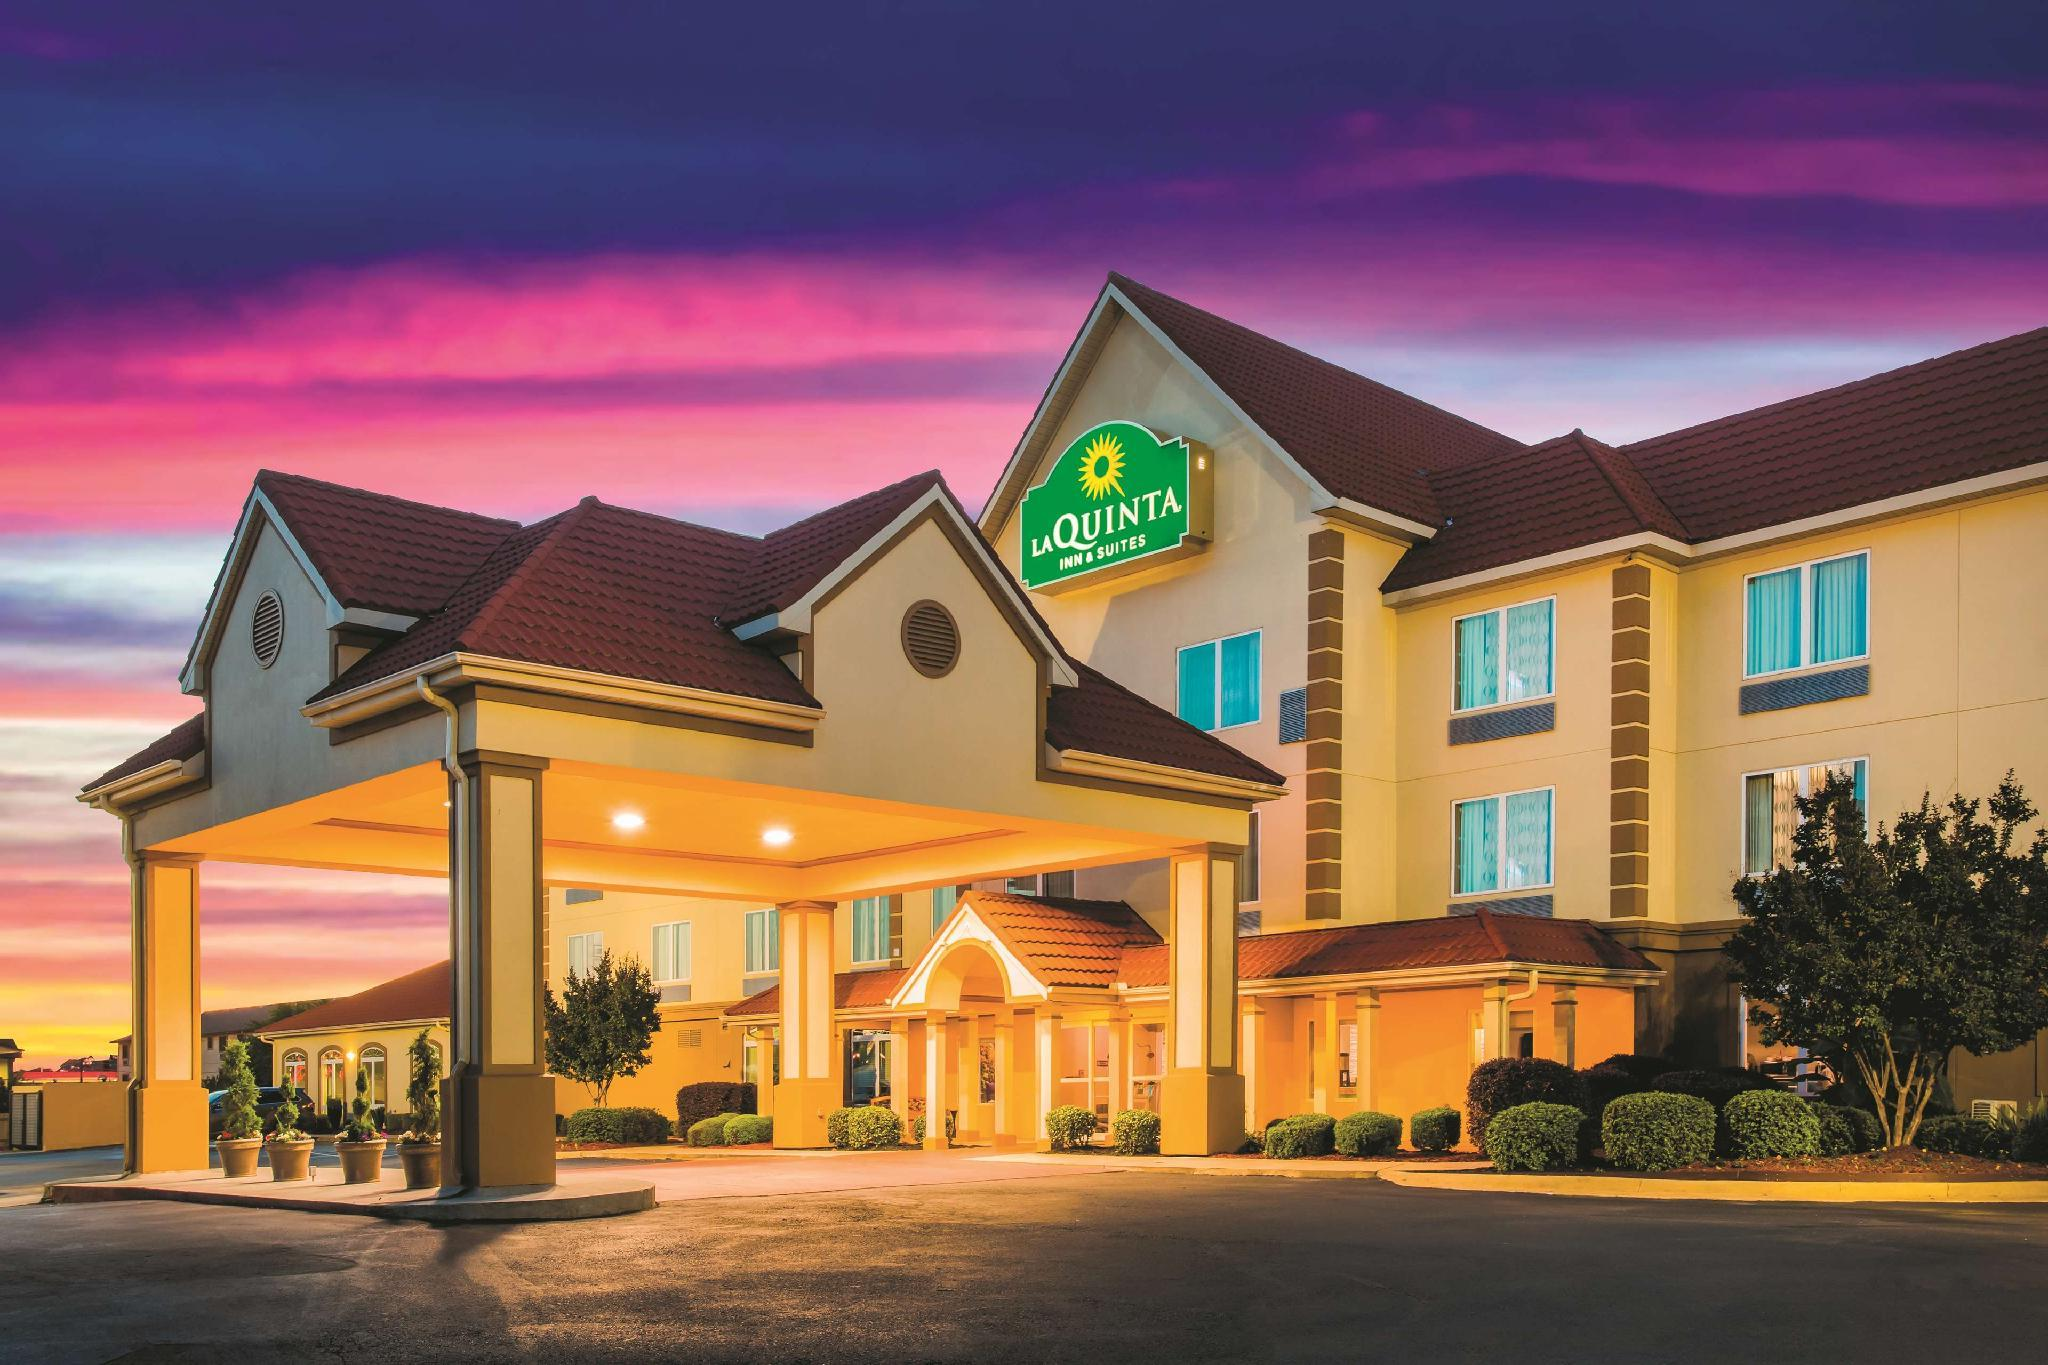 La Quinta Inn And Suites By Wyndham Russellville